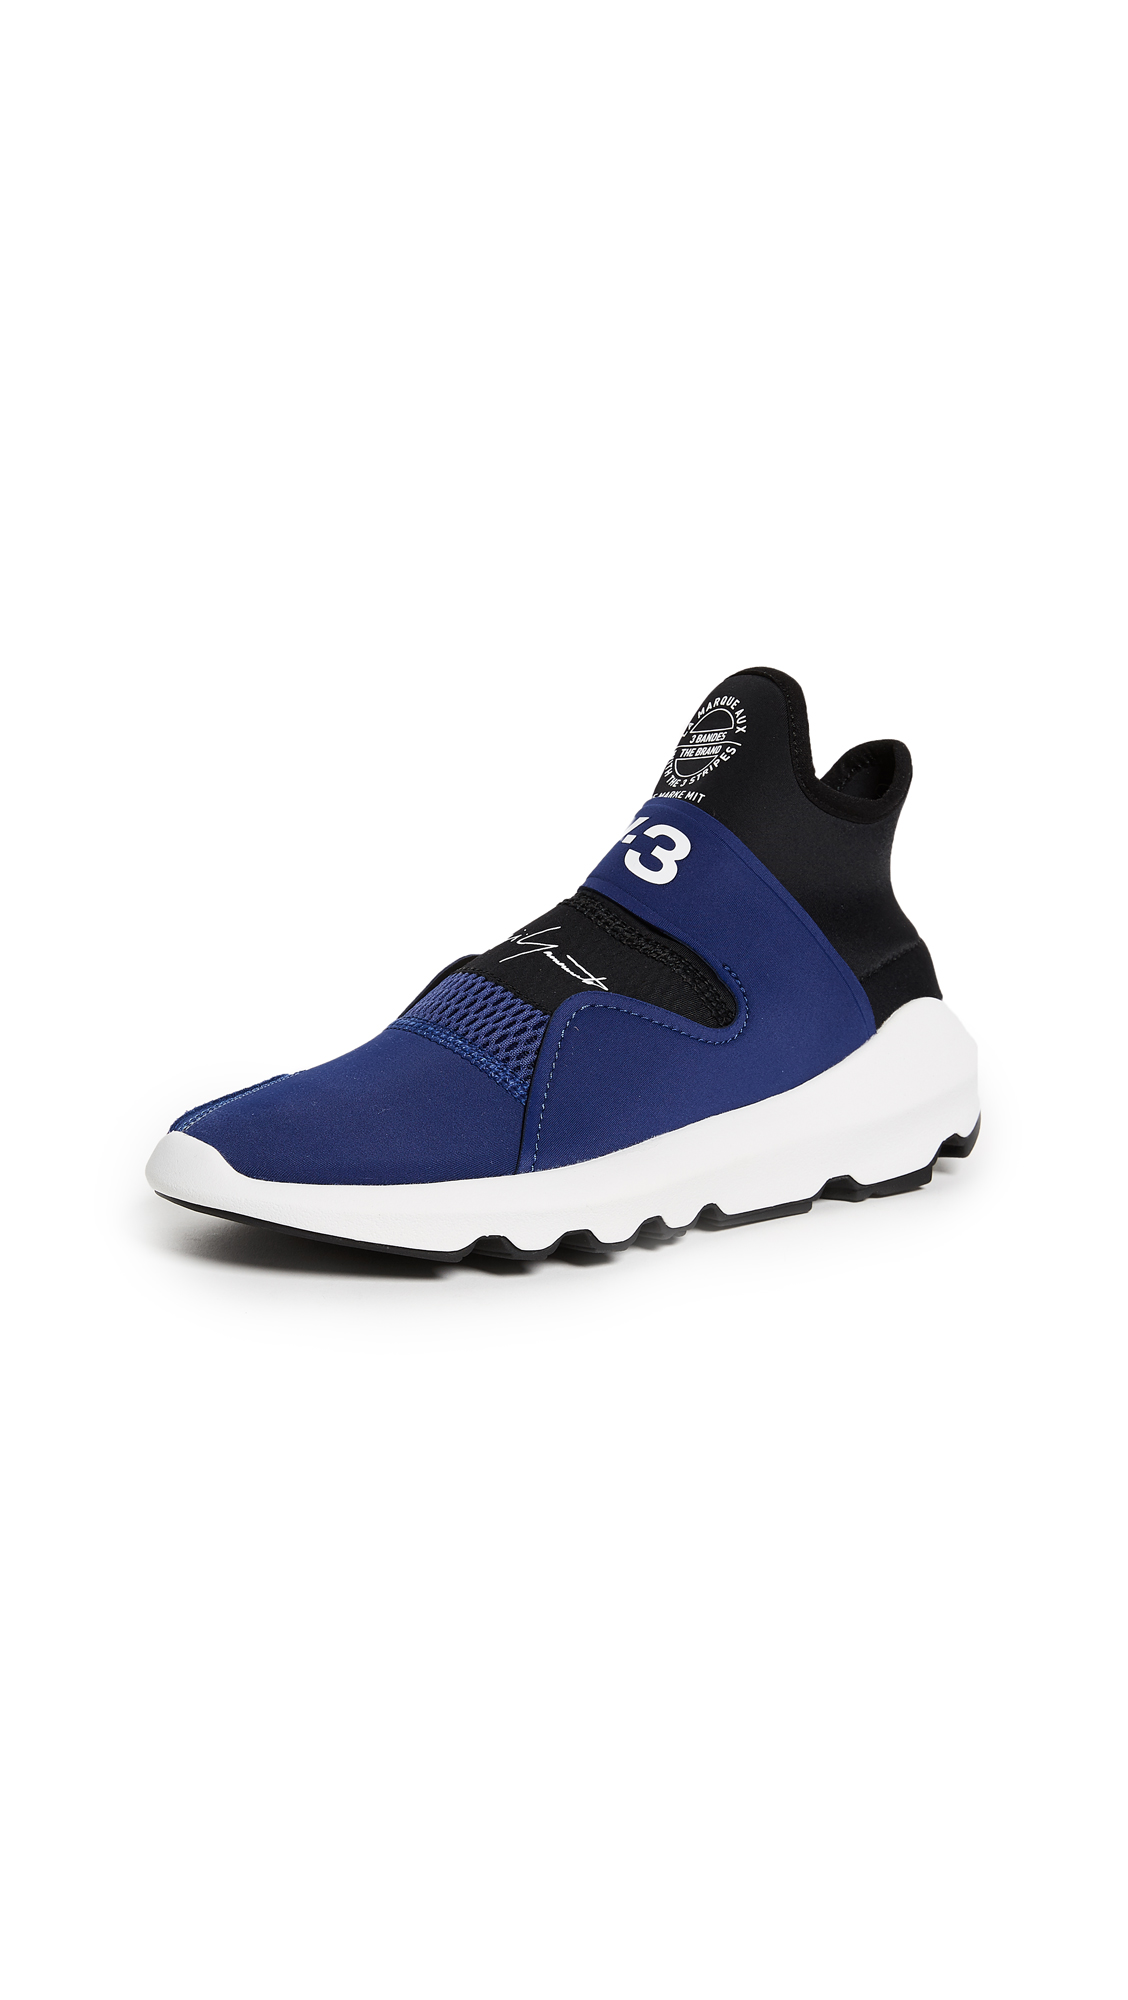 Y-3 Y-3 Suberou Sneakers - Unity Ink/White/Black